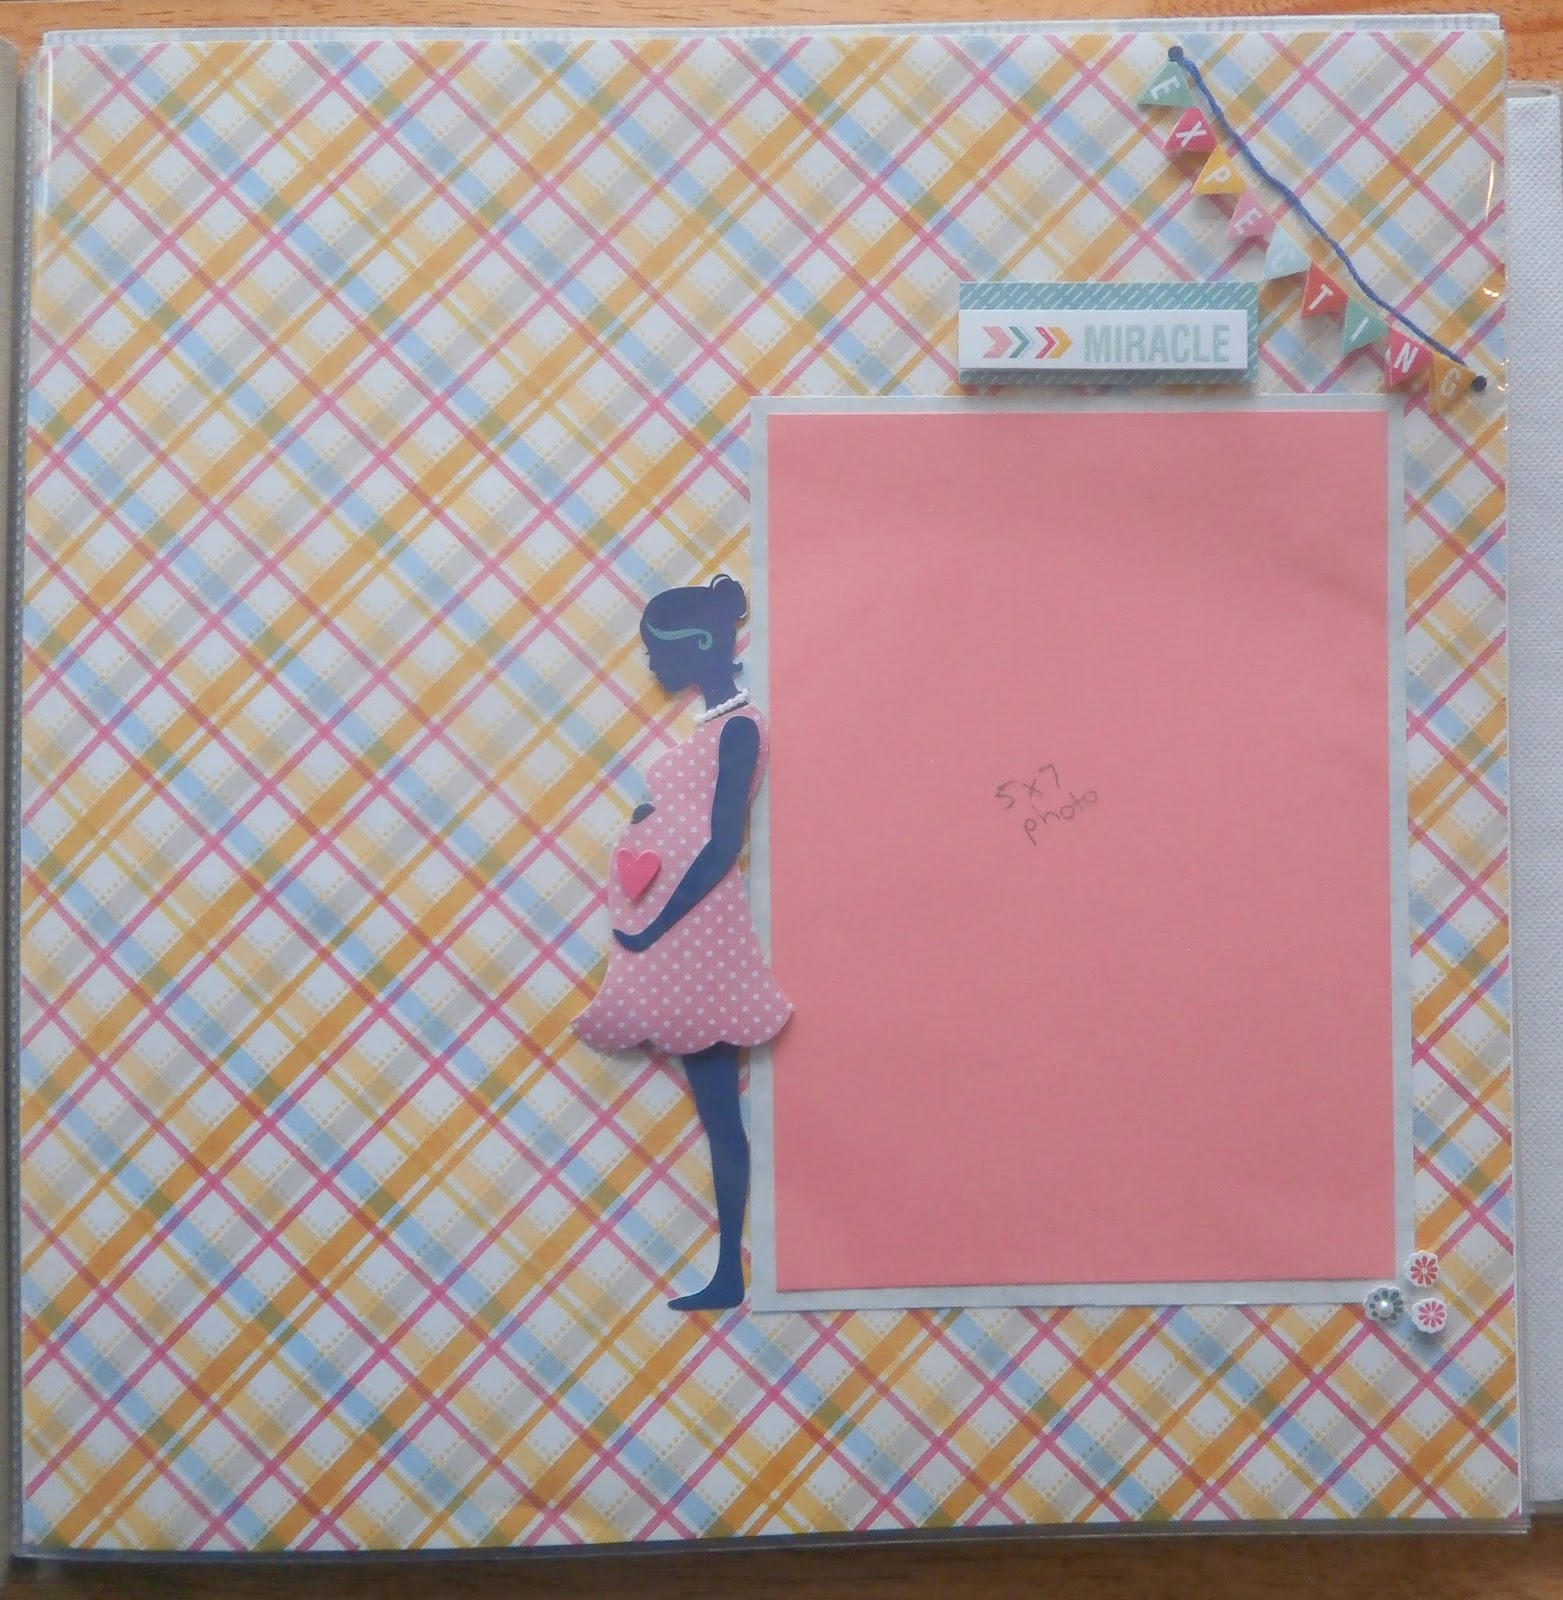 Journey scrapbook ideas - Expectant Mother Page I Never Used To Try And Include This Page Since I Hated Having My Picture Taken When I Was Pregnant But Now That My Boys Are Older I